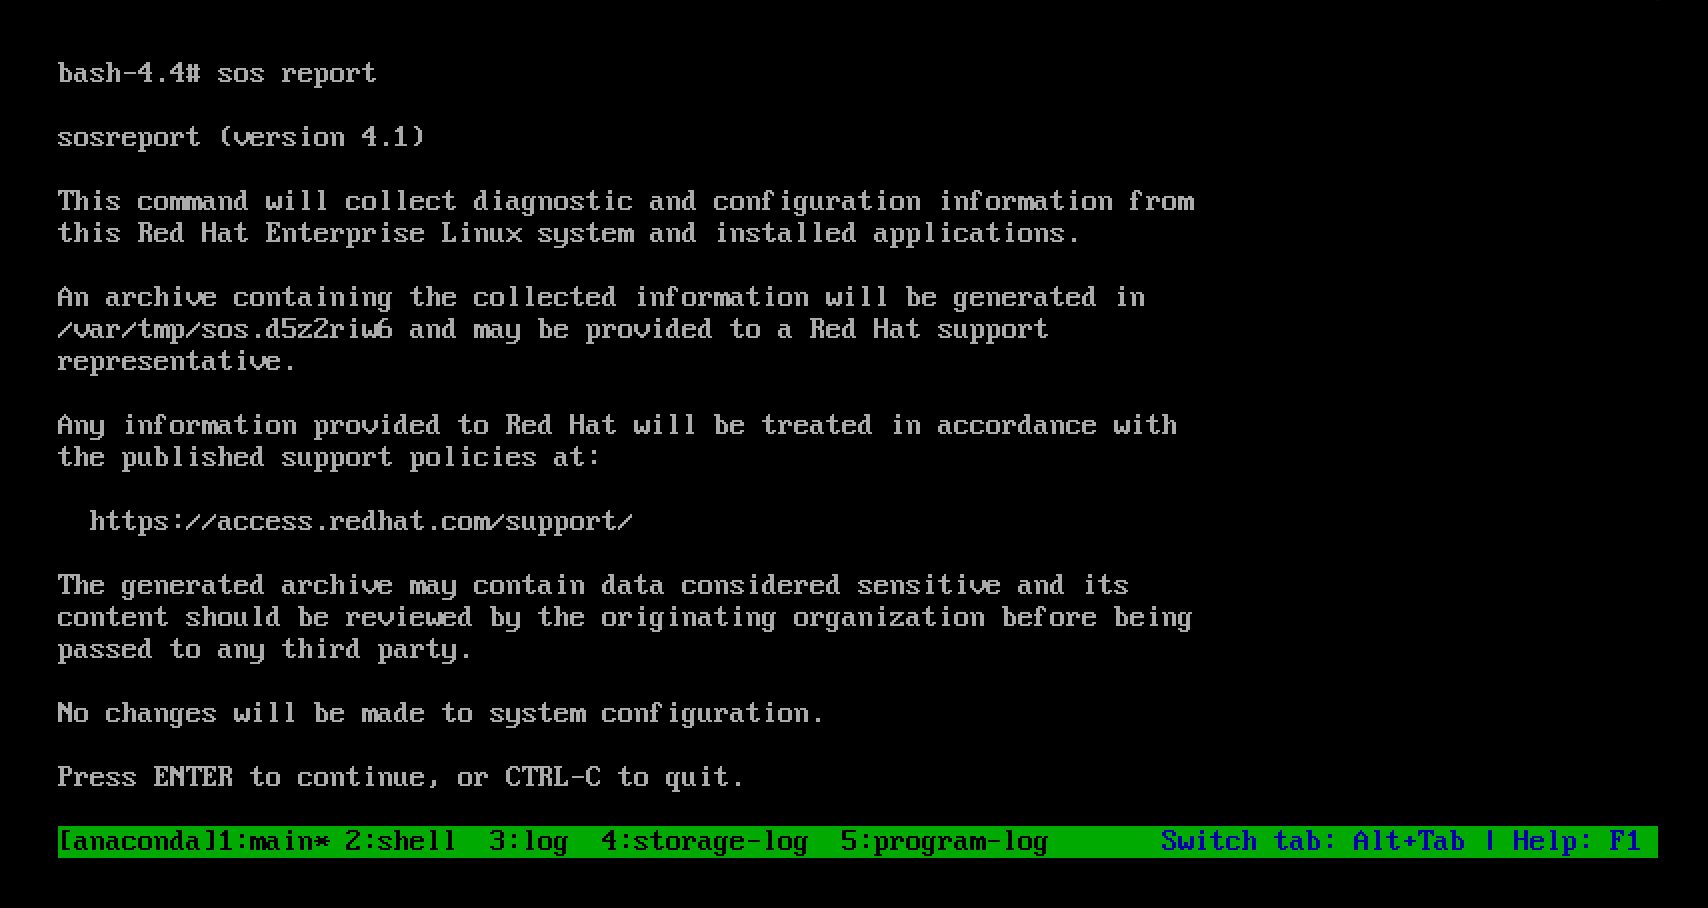 Screenshot of the sos report utility prompting you to press the Enter key to continue running an sos report